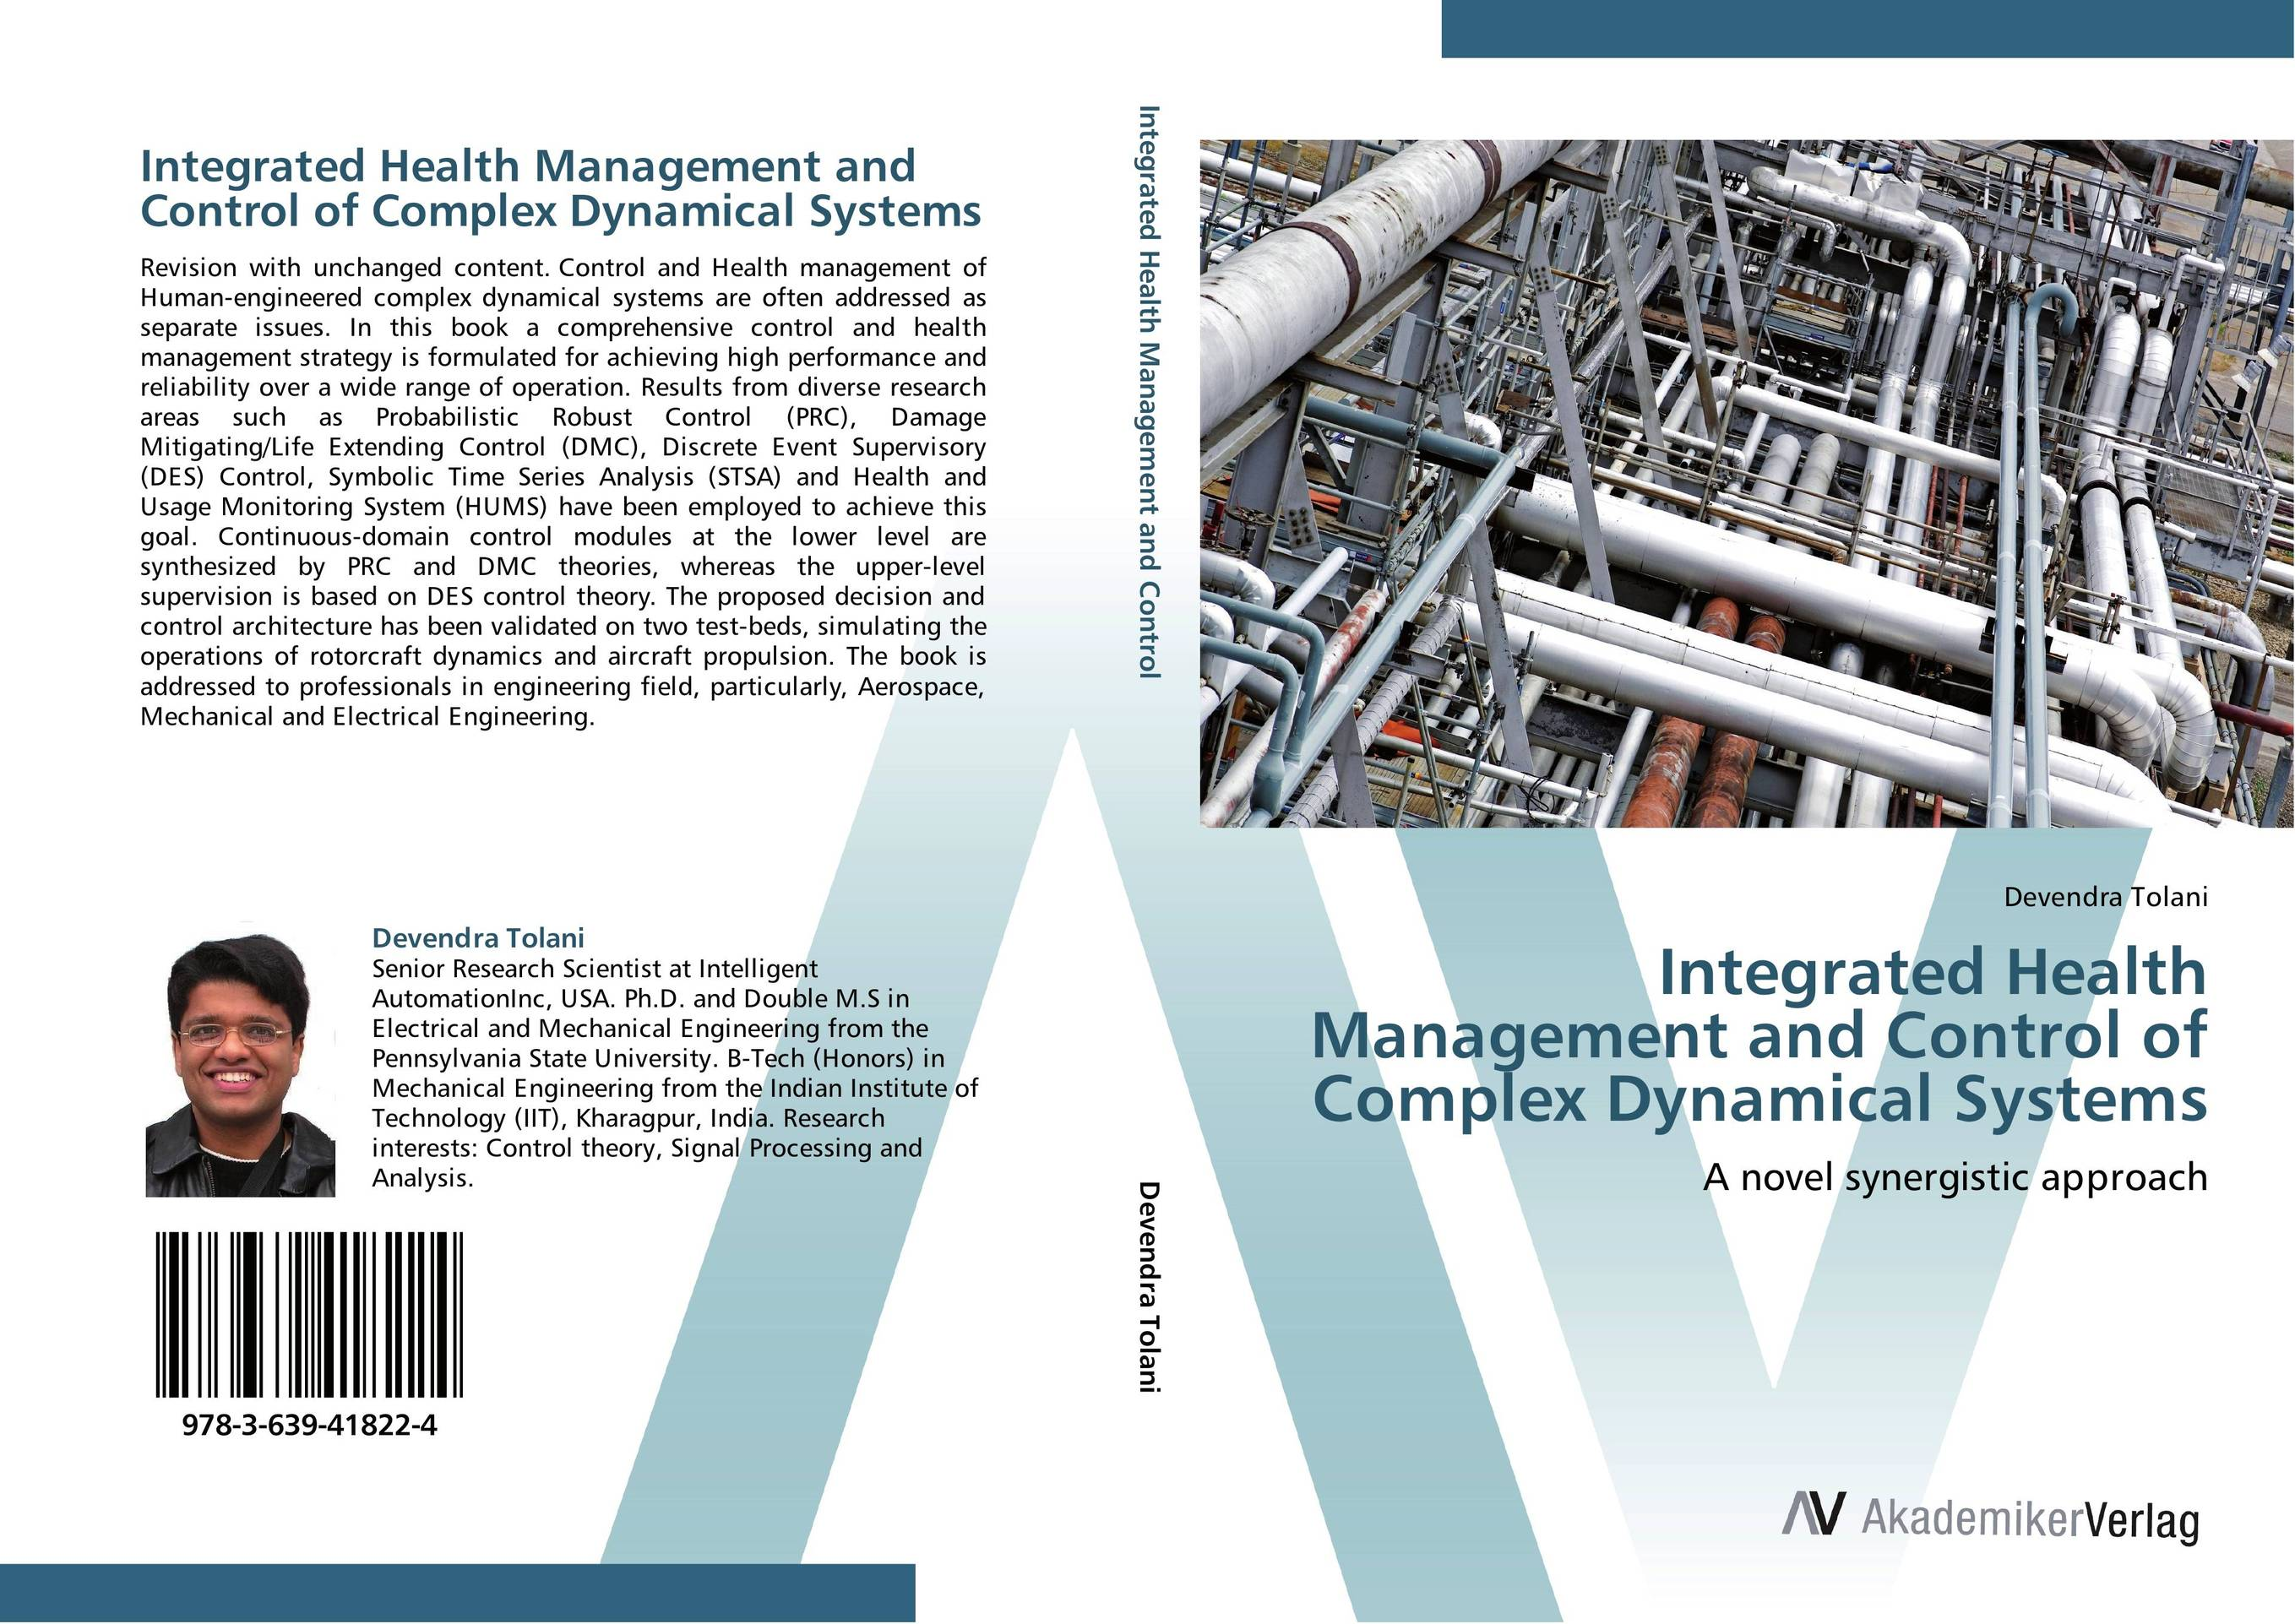 Integrated Health Management and Control of Complex Dynamical Systems asmaa chouairi mohamed el ghorba and abdelkader benali reliability and maintenance analysis of complex industrial systems